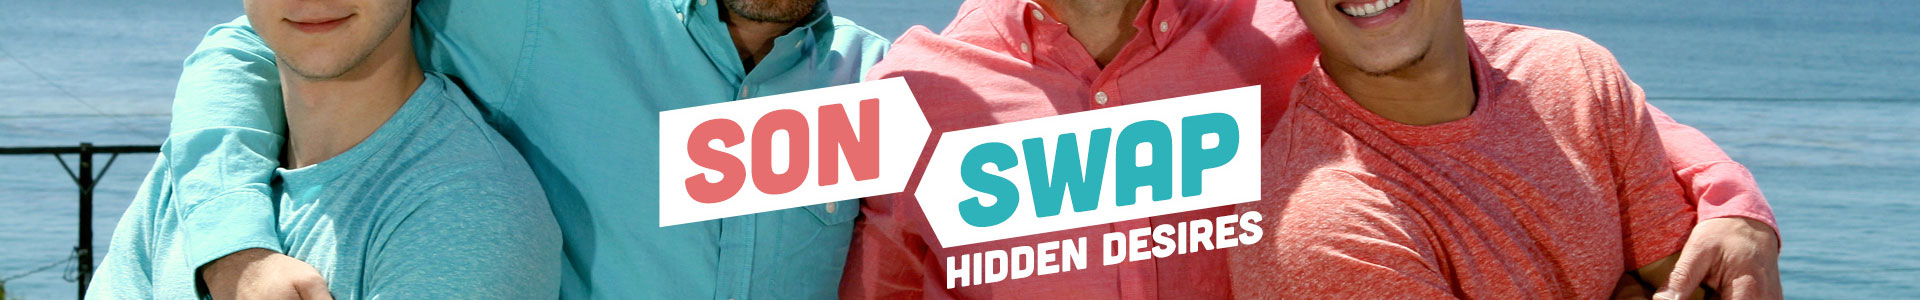 Men Series: Son Swap Hidden Desires